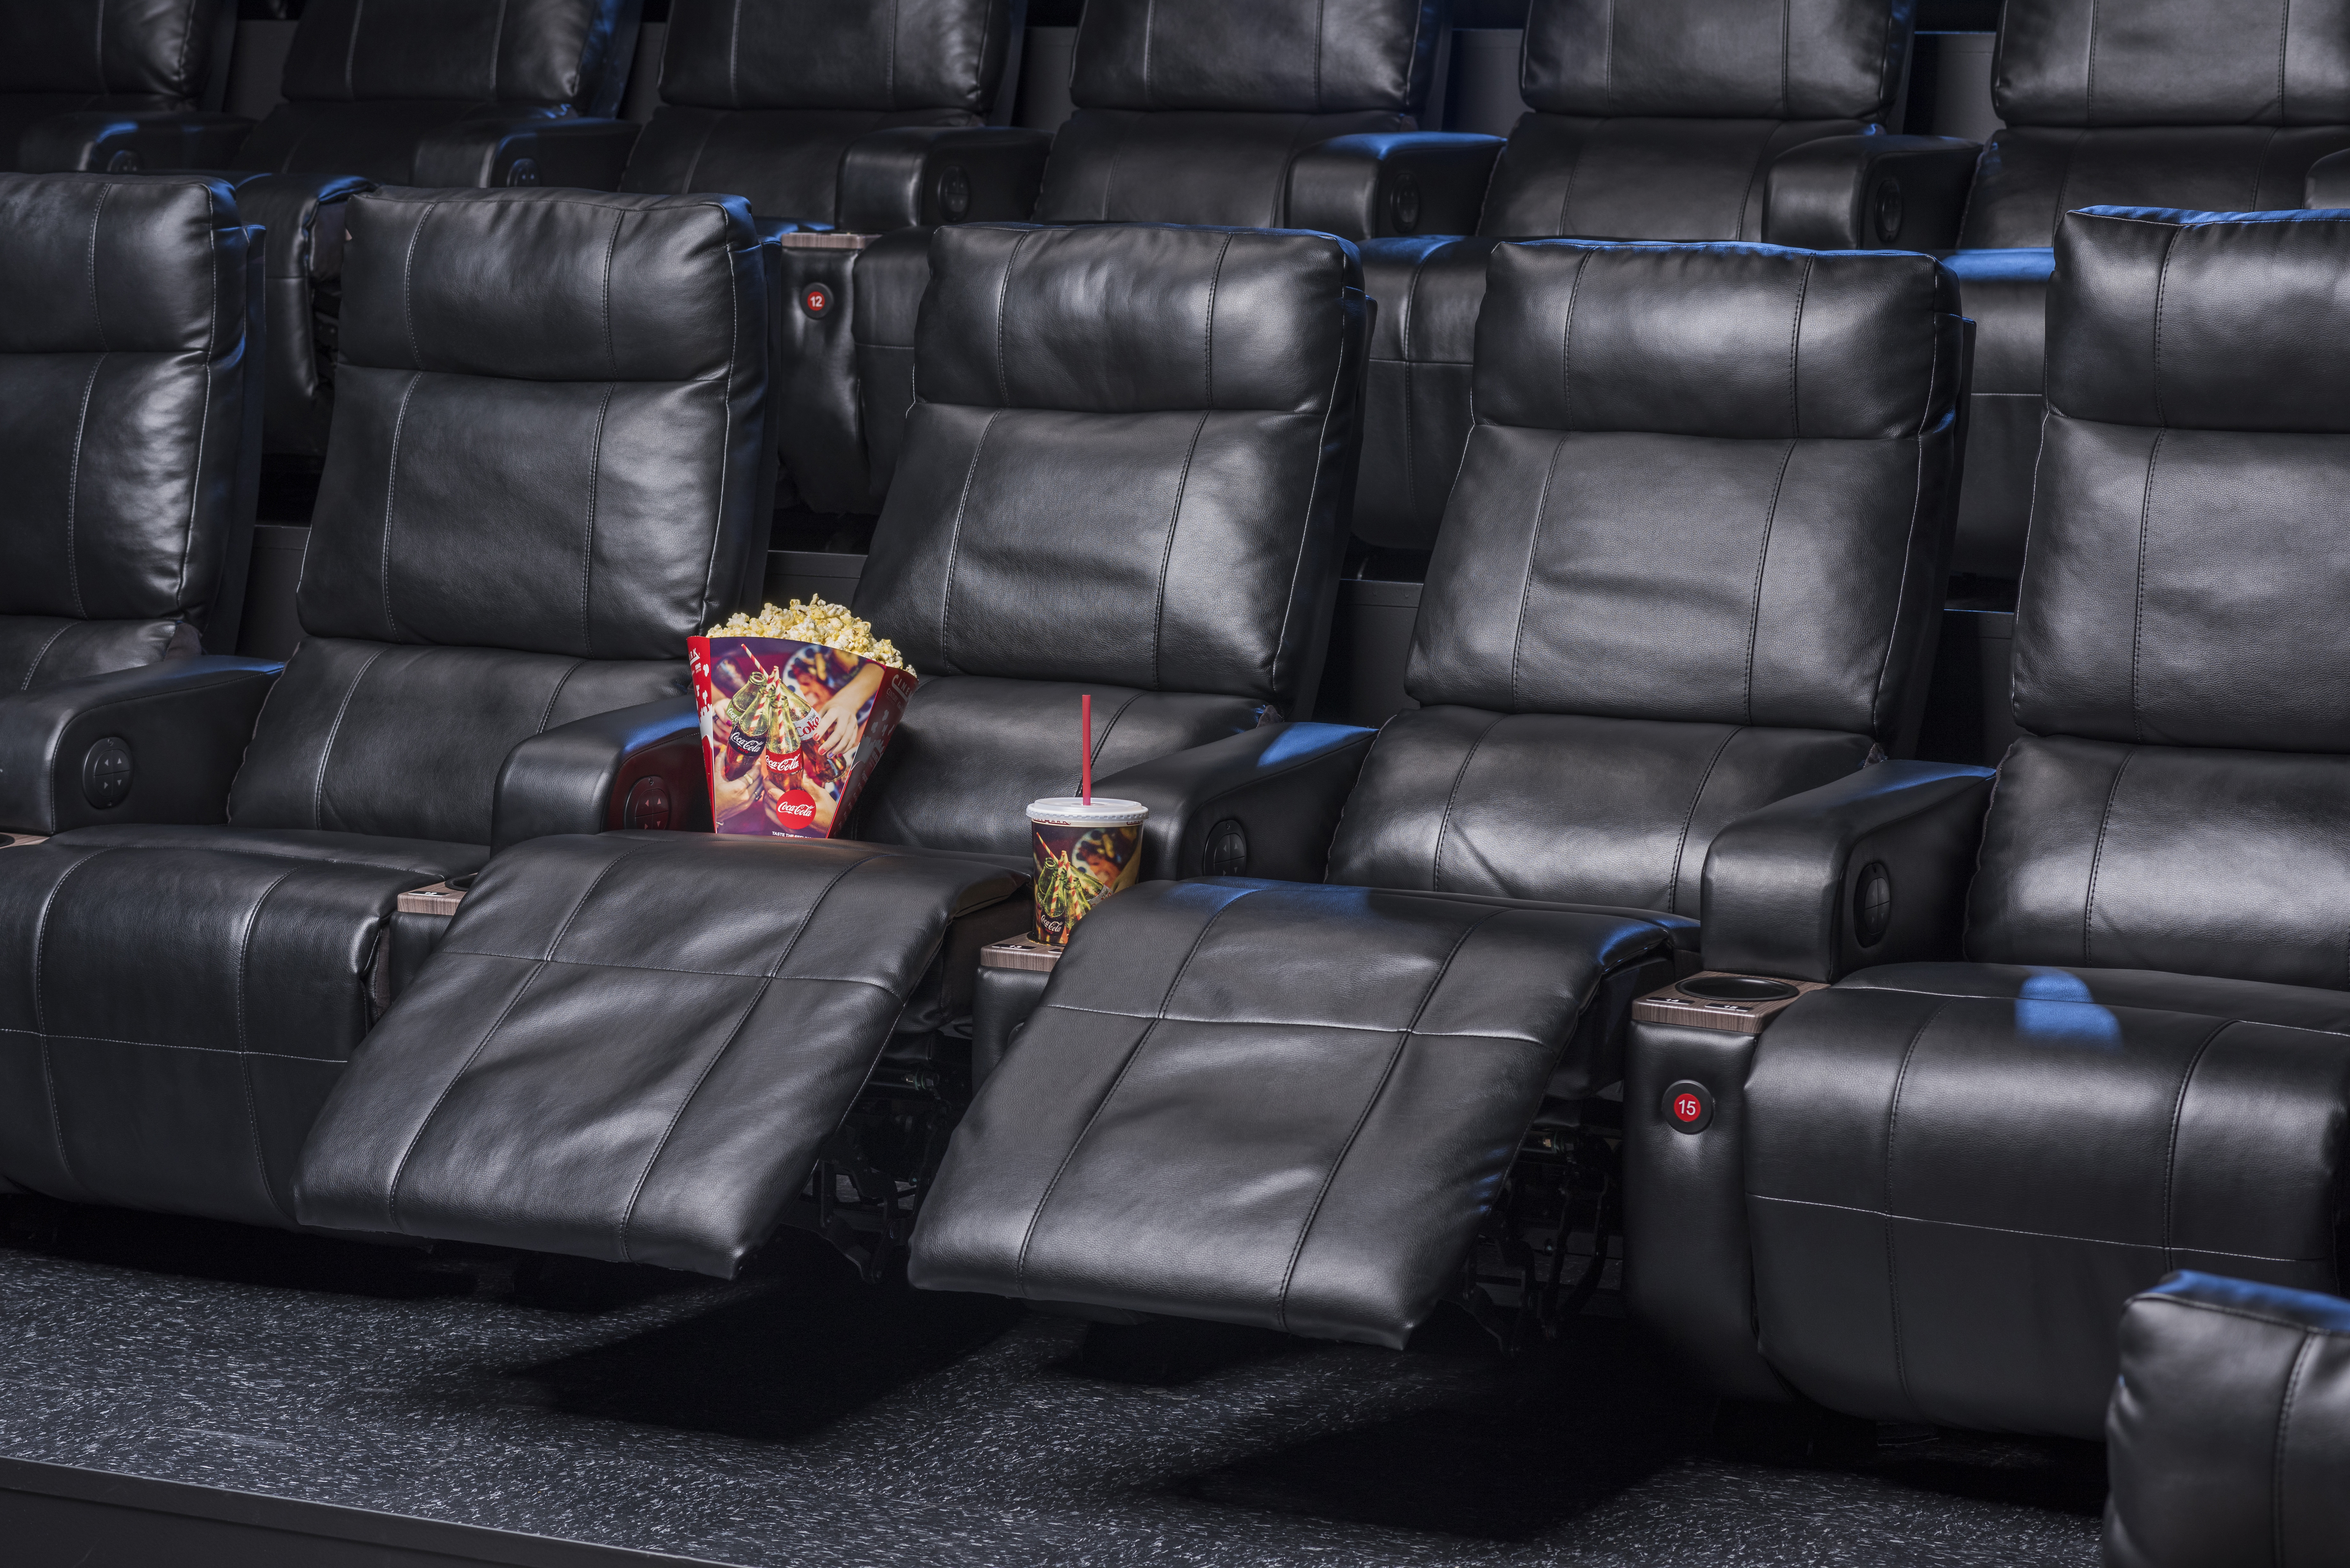 Cinemark Announces Remodel Of 12 Screen Theatre In Lufkin Texas With Luxury Lounger Recliners